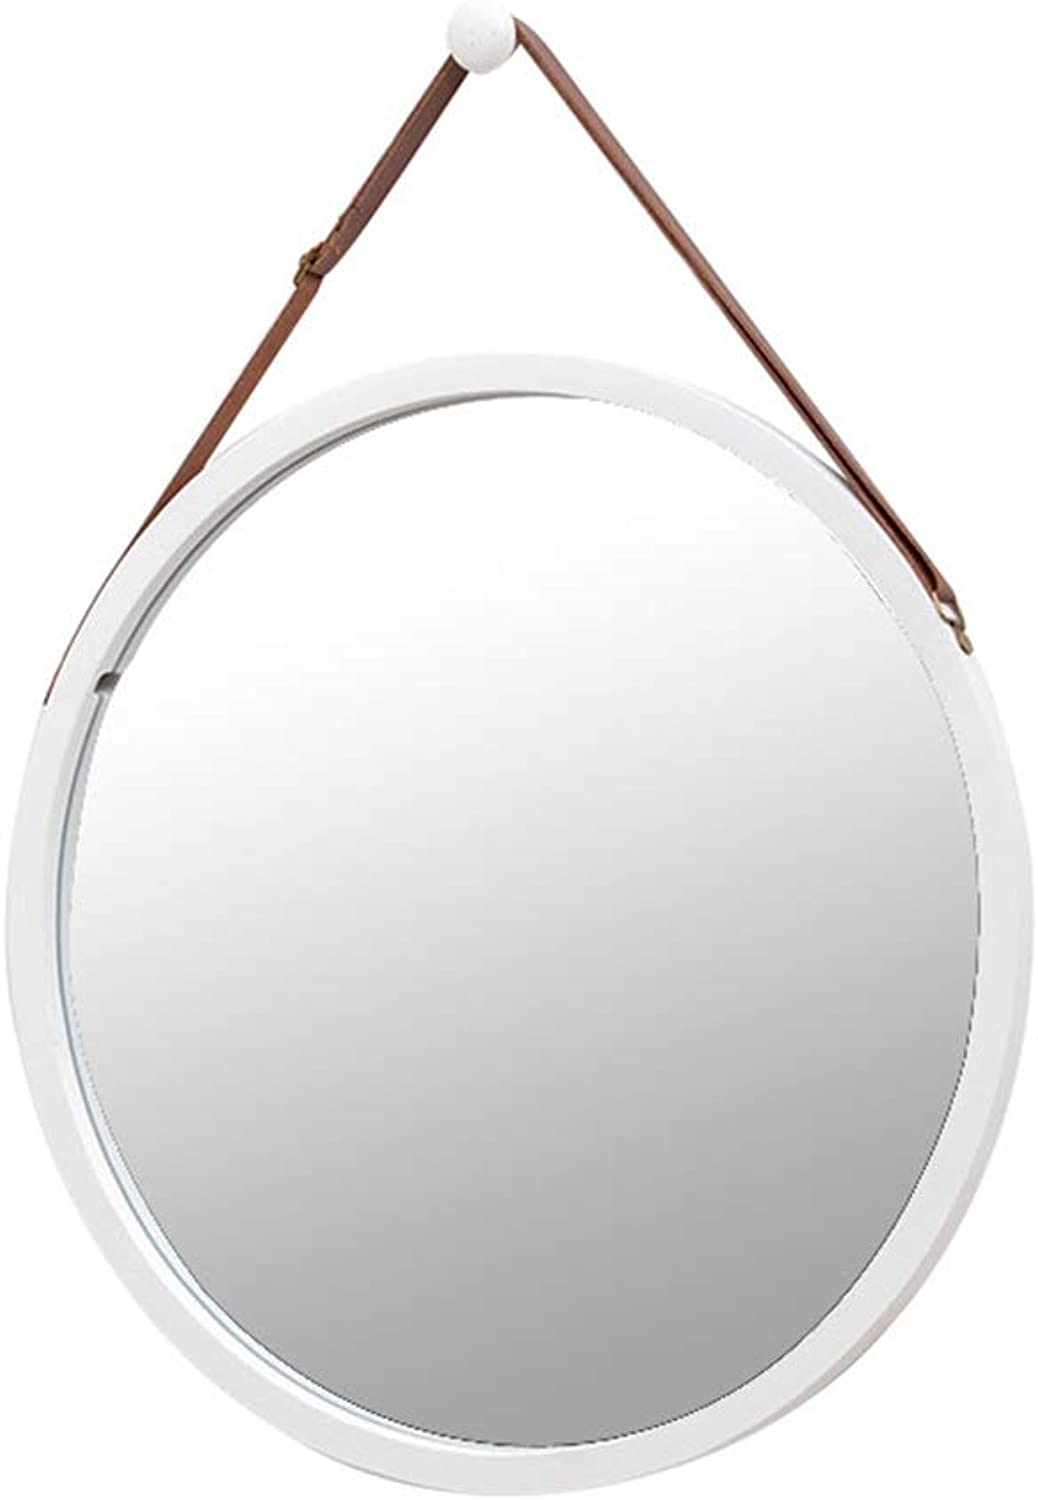 Wall Mounted Mirror- Decorative- Round- with Hanging Strap- Modern- High Definition Shaving Mirror- Ideal for Hallway, Living Room, Bedroom